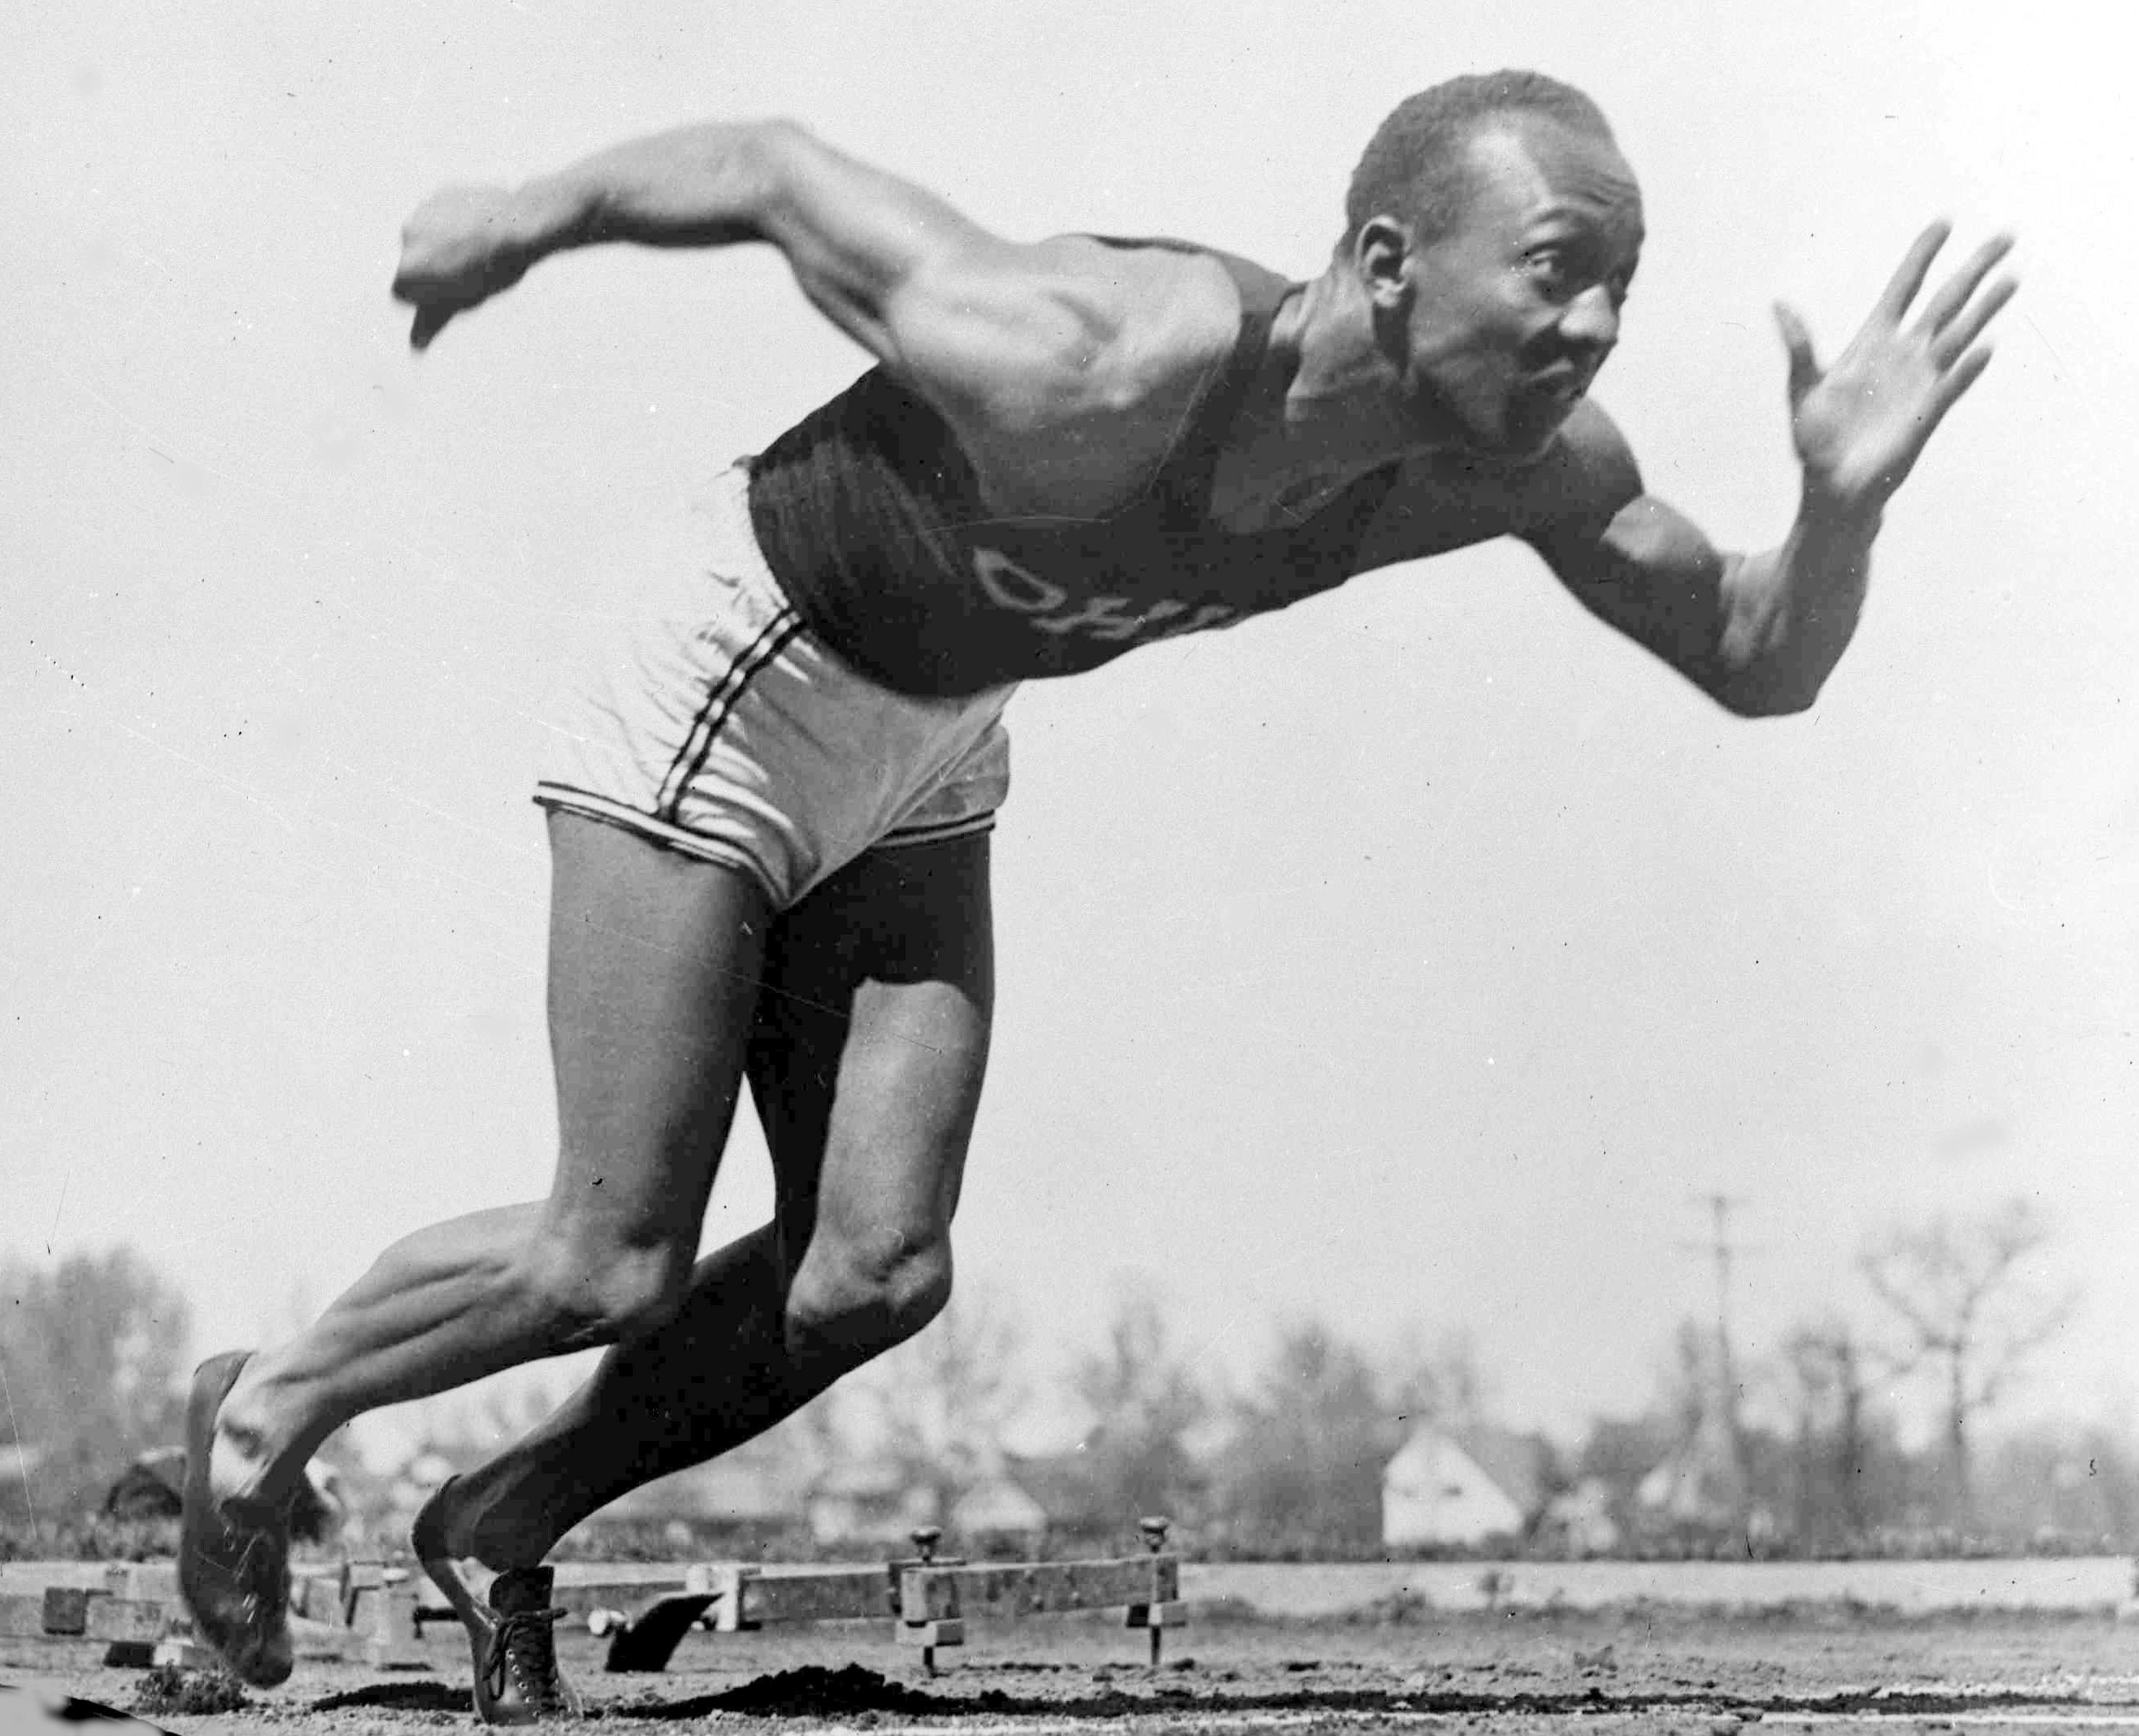 File - In this Aug. 5, 1936 file photo, American athlete Jesse Owens practices in the Olympic Village in Berlin. Shortly after Jesse Owens returned home from his snubbing by Adolph Hitler at the 1936 Olympics, he and America's 17 other black Olympians fou